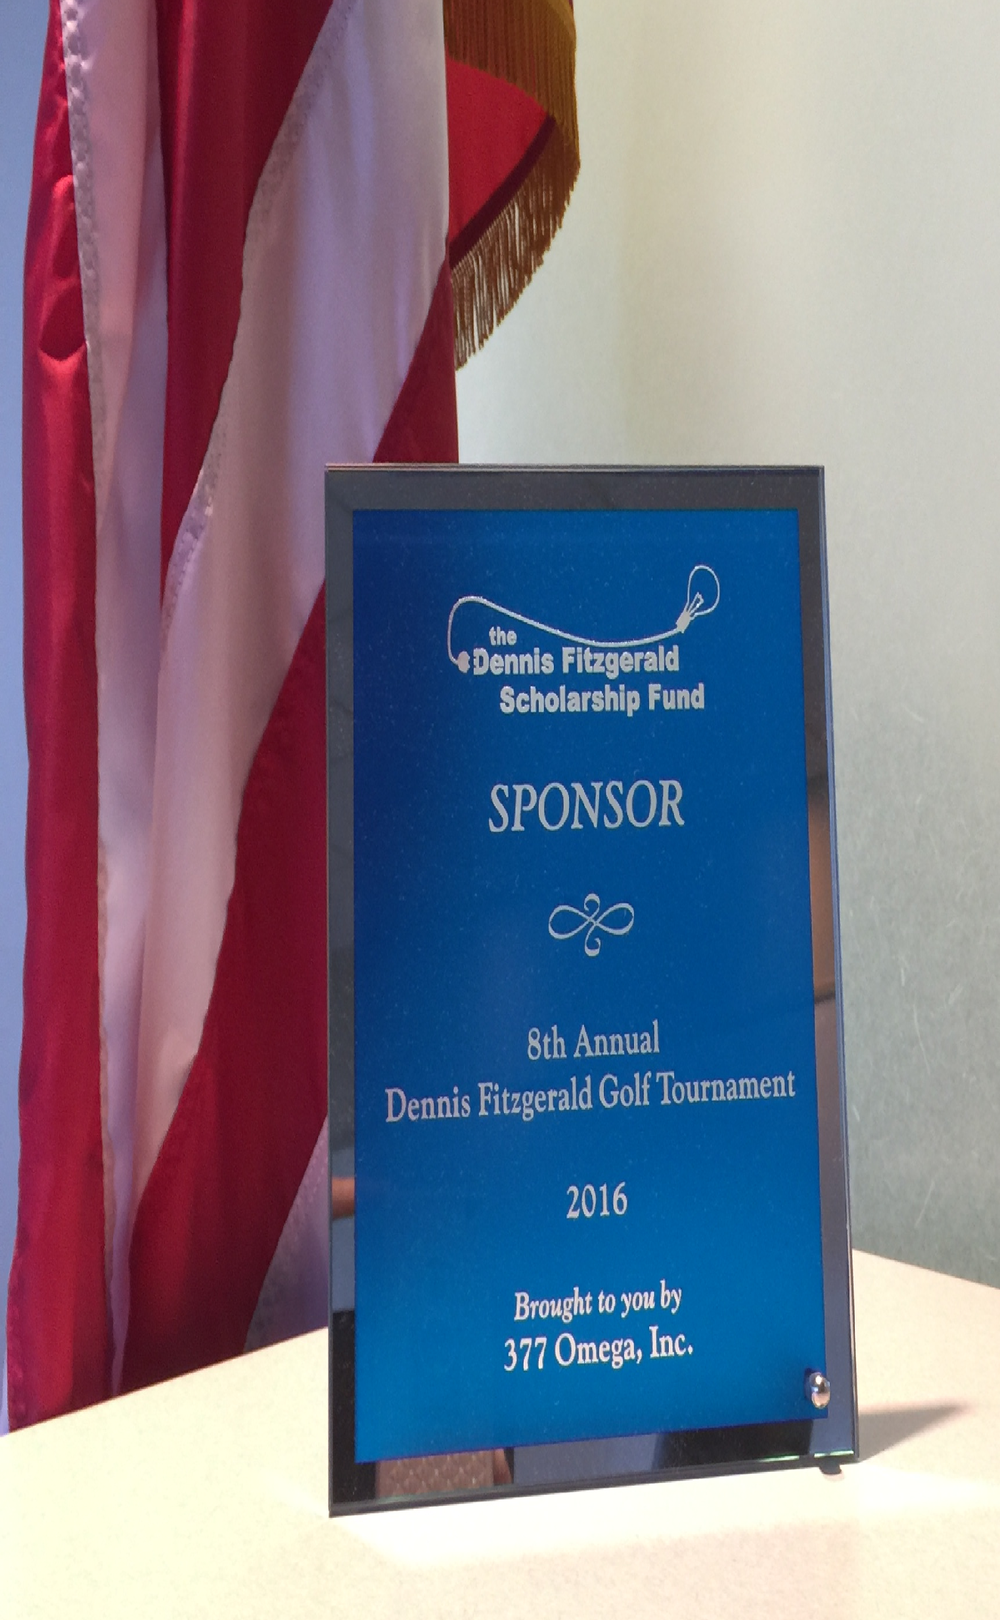 Each sponsor will also receive an appreciation plaque!